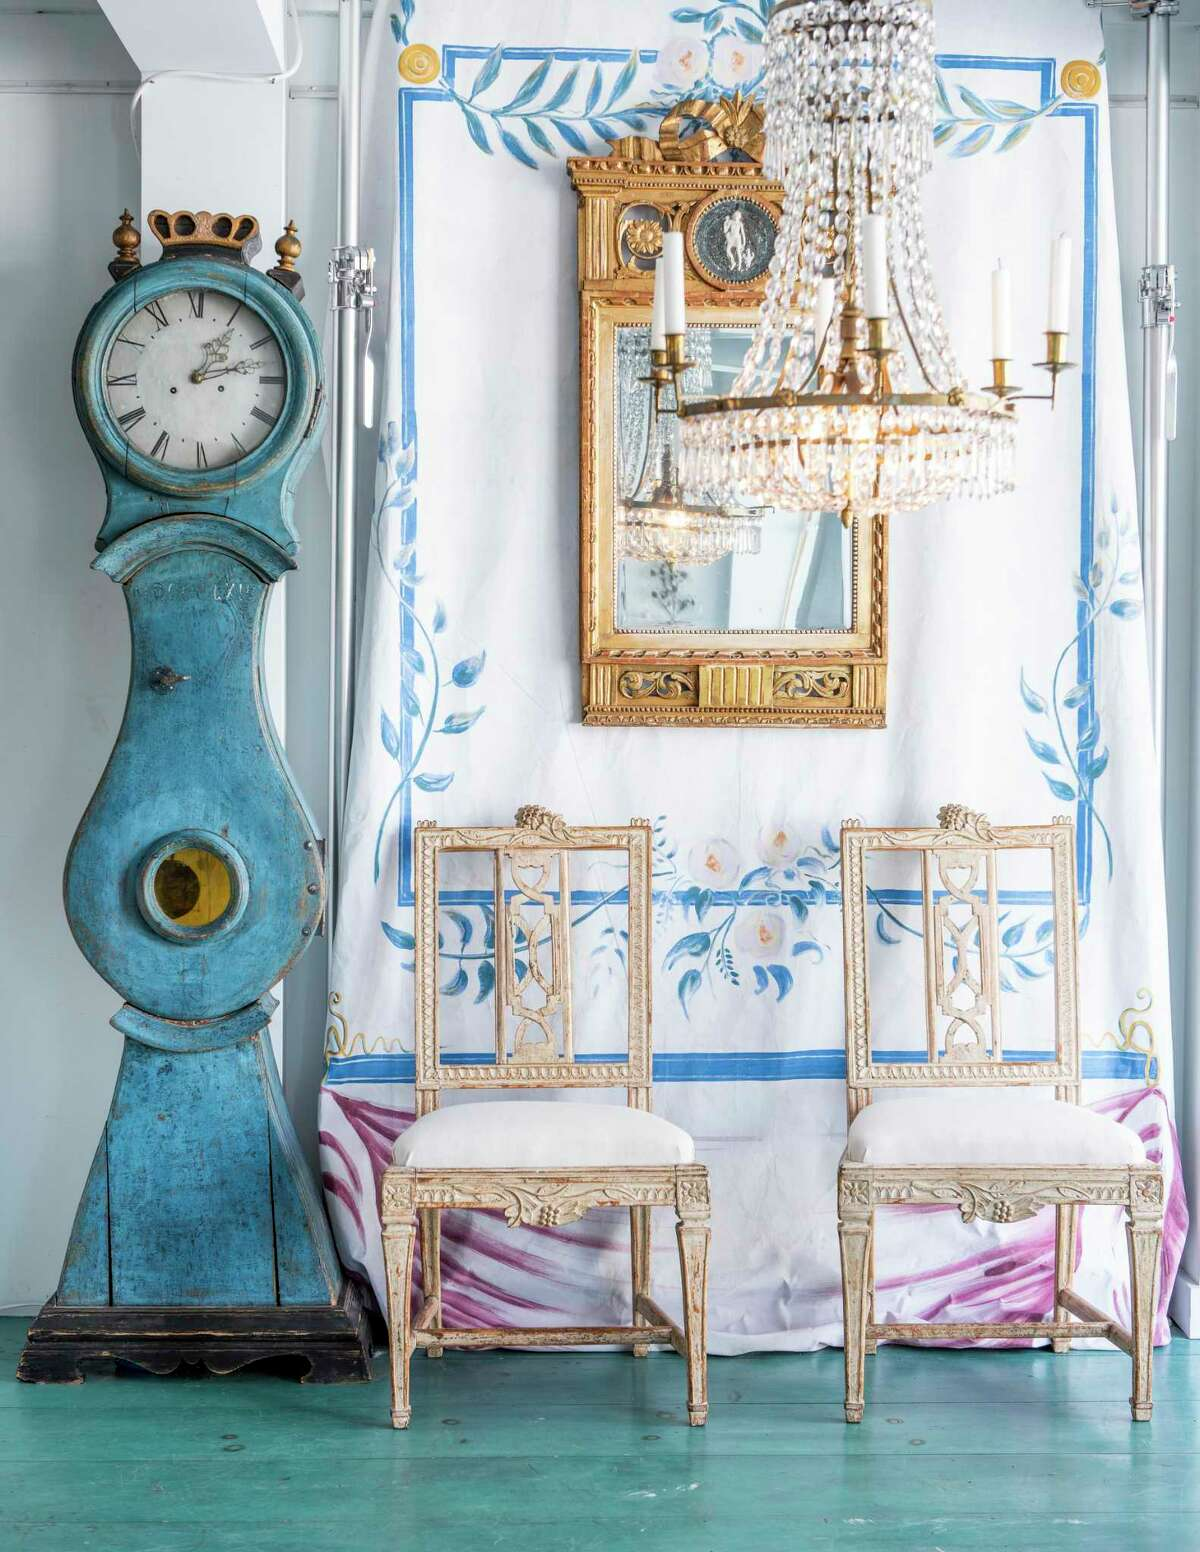 A display at Dawn Hill Antiques in New Preston features a painted panel depicting wall paintings typically found in 18th century Swedish rooms, a Gustavian period Swedish mirror, a Swedish blue painted Mora clock, and a Swedish chandelier; the two chairs are a pair of Swedish Lindome dining chairs, circa 1790.